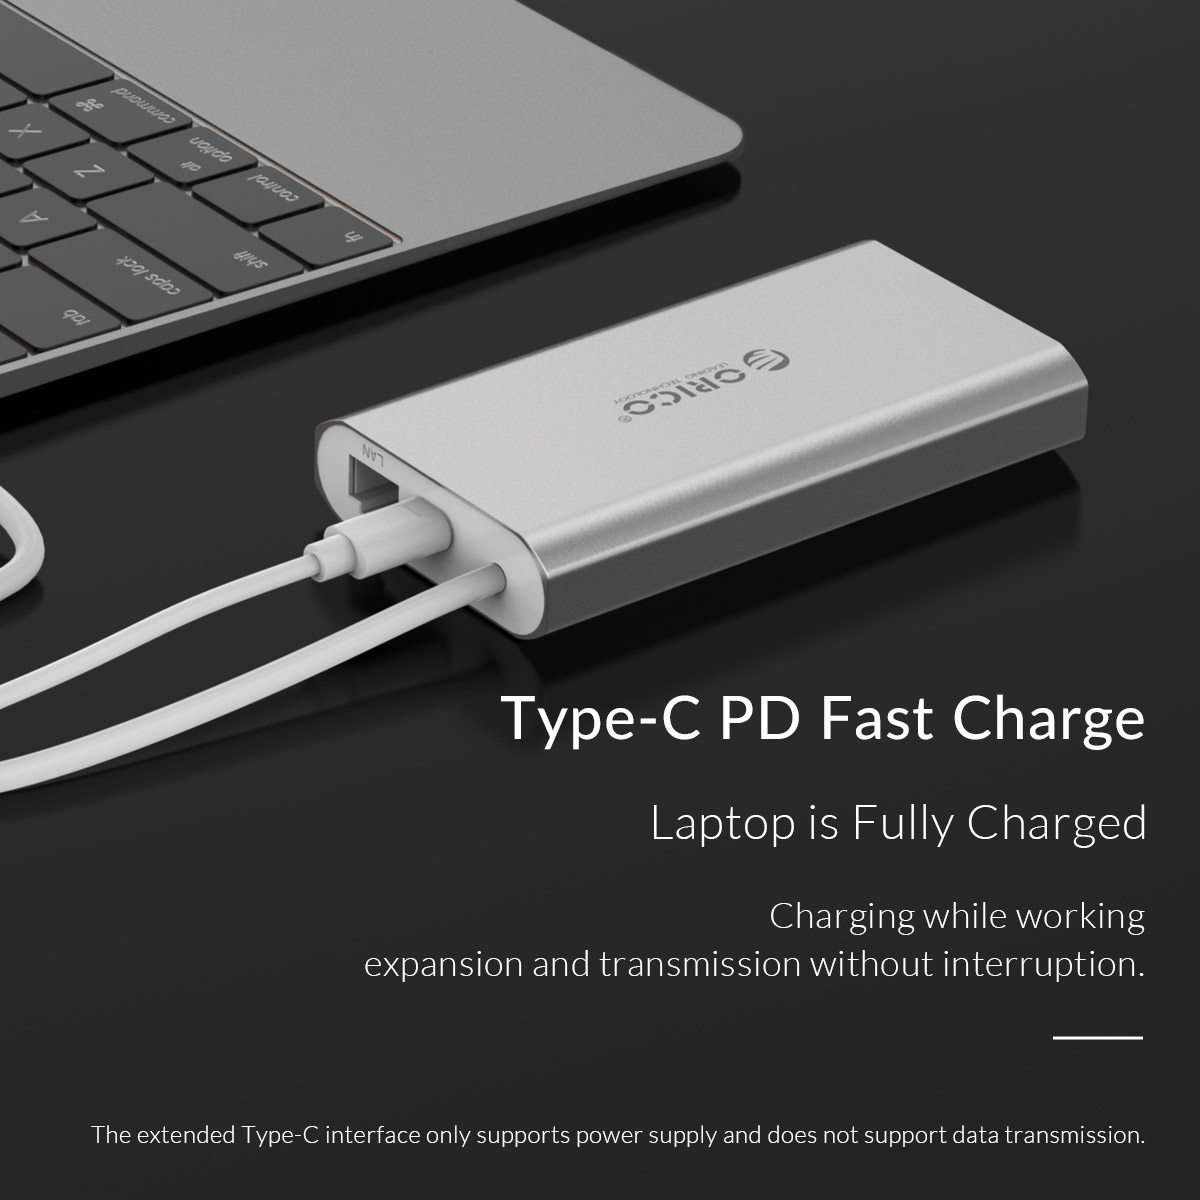 Type-C PD fast Charge